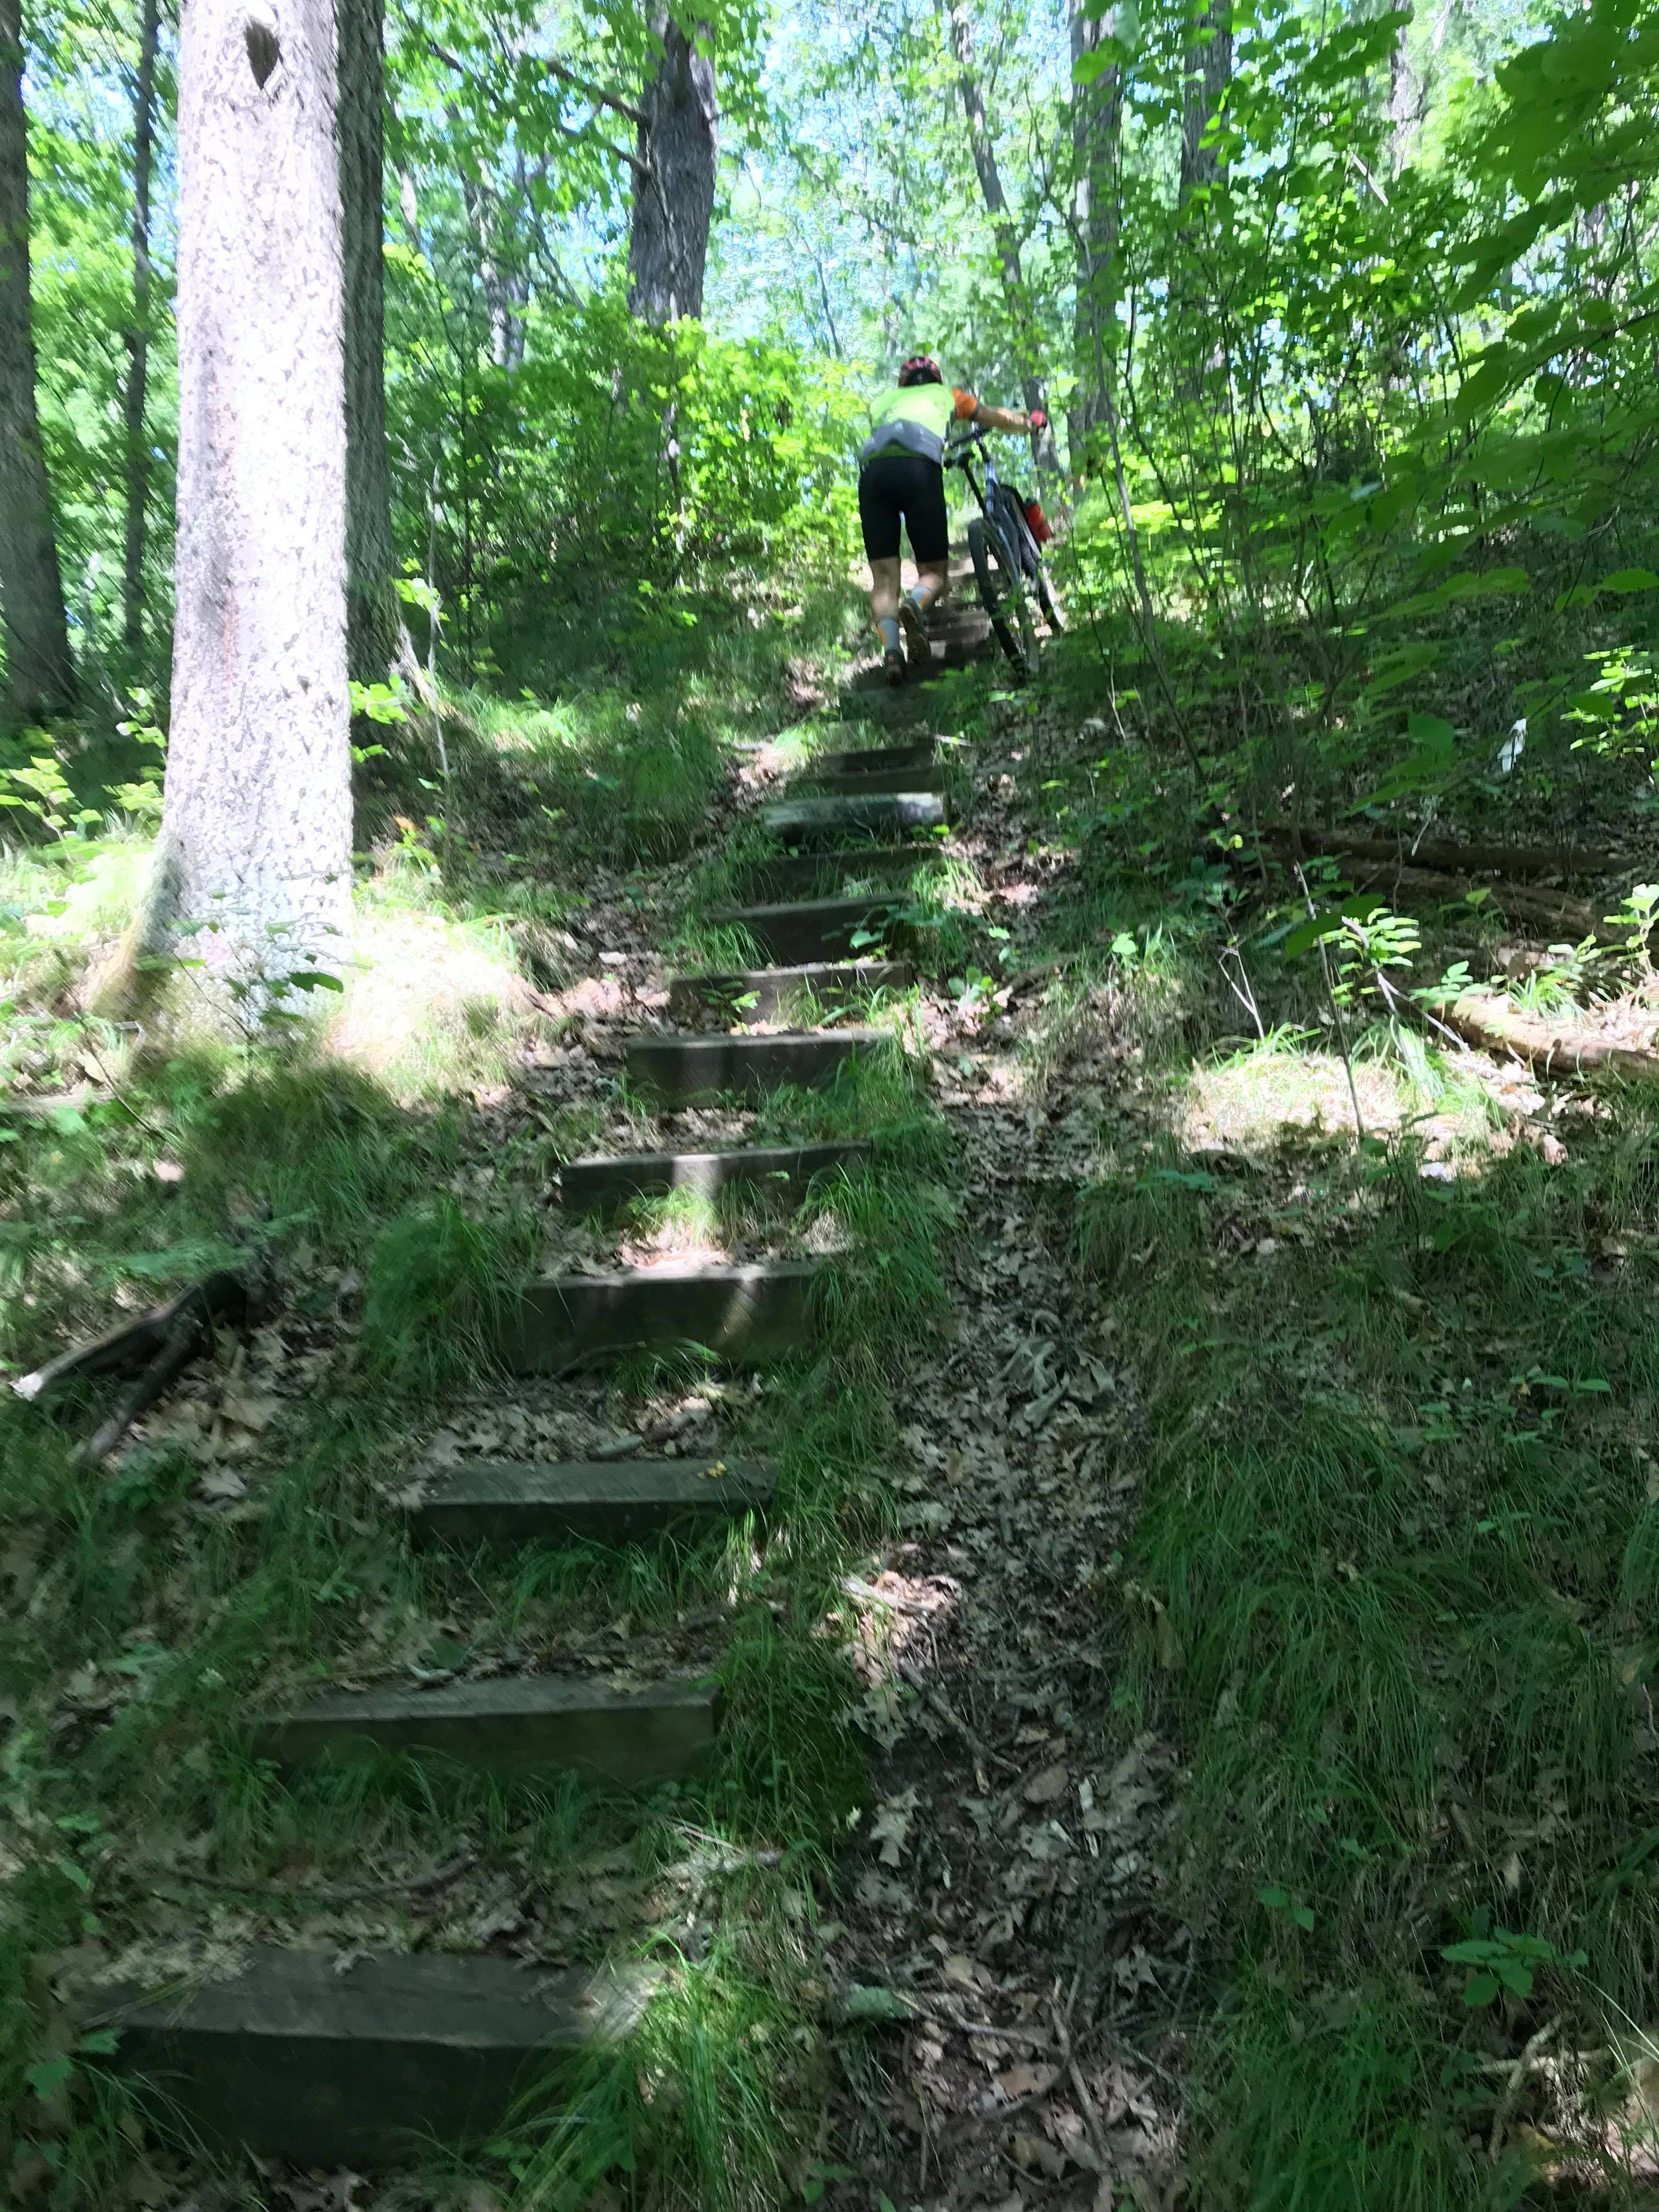 Get ready for this hike-a-bike!